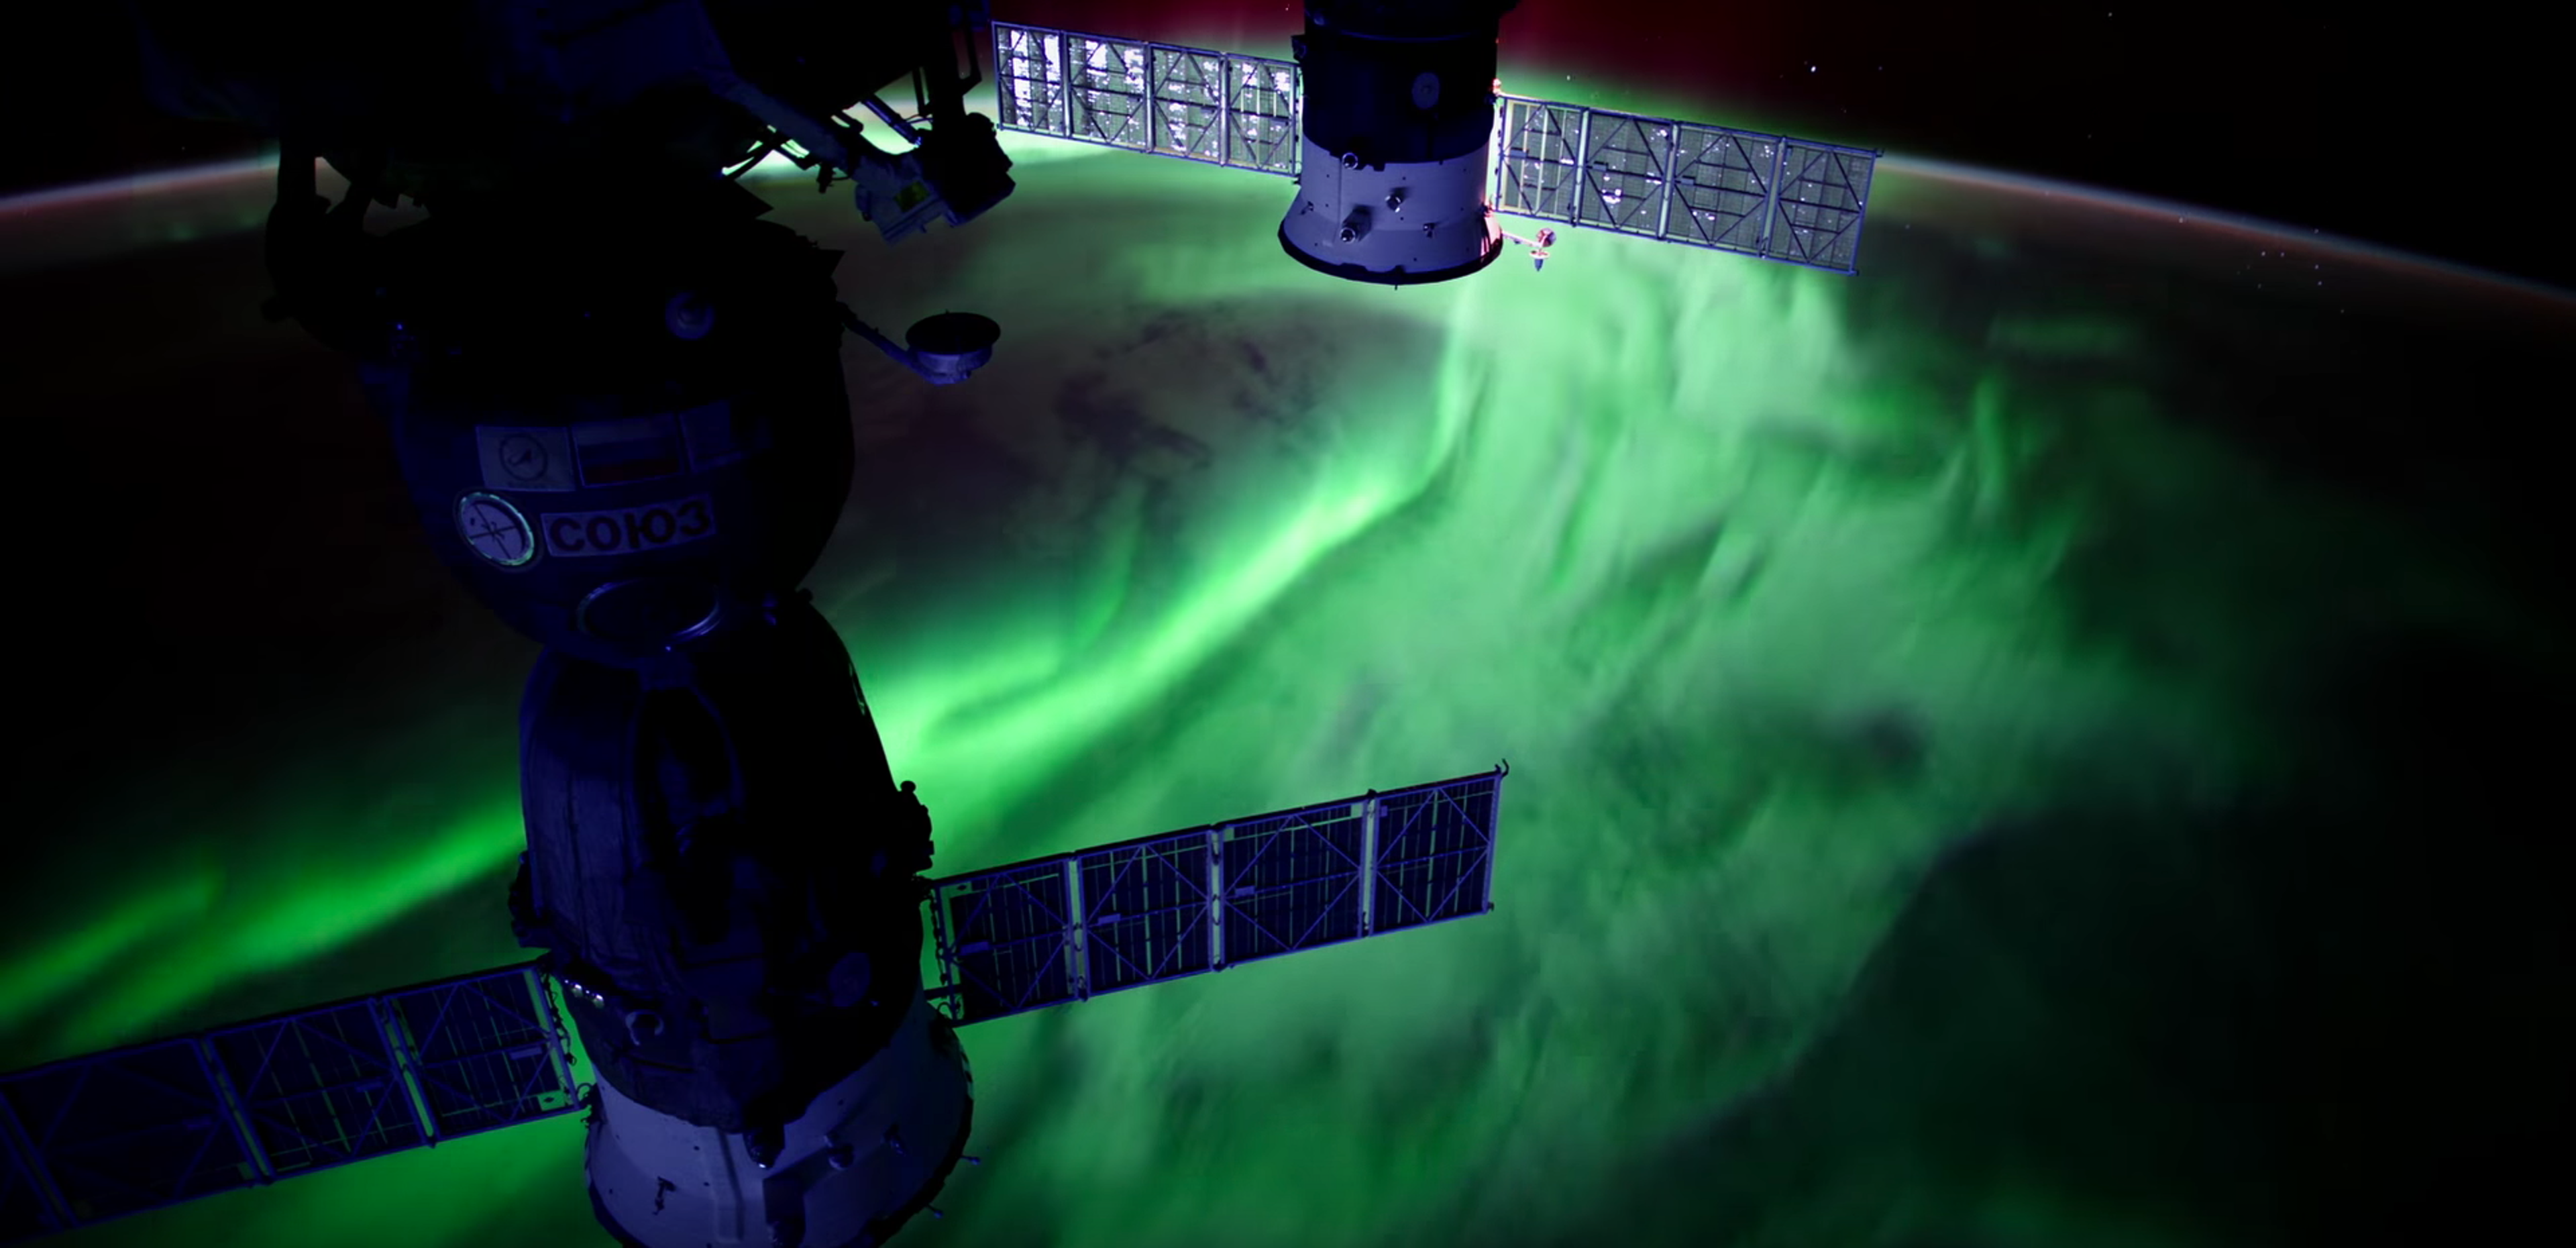 When charged particles from the sun interact with Earth's magnetic field, they produce dazzling auroras.